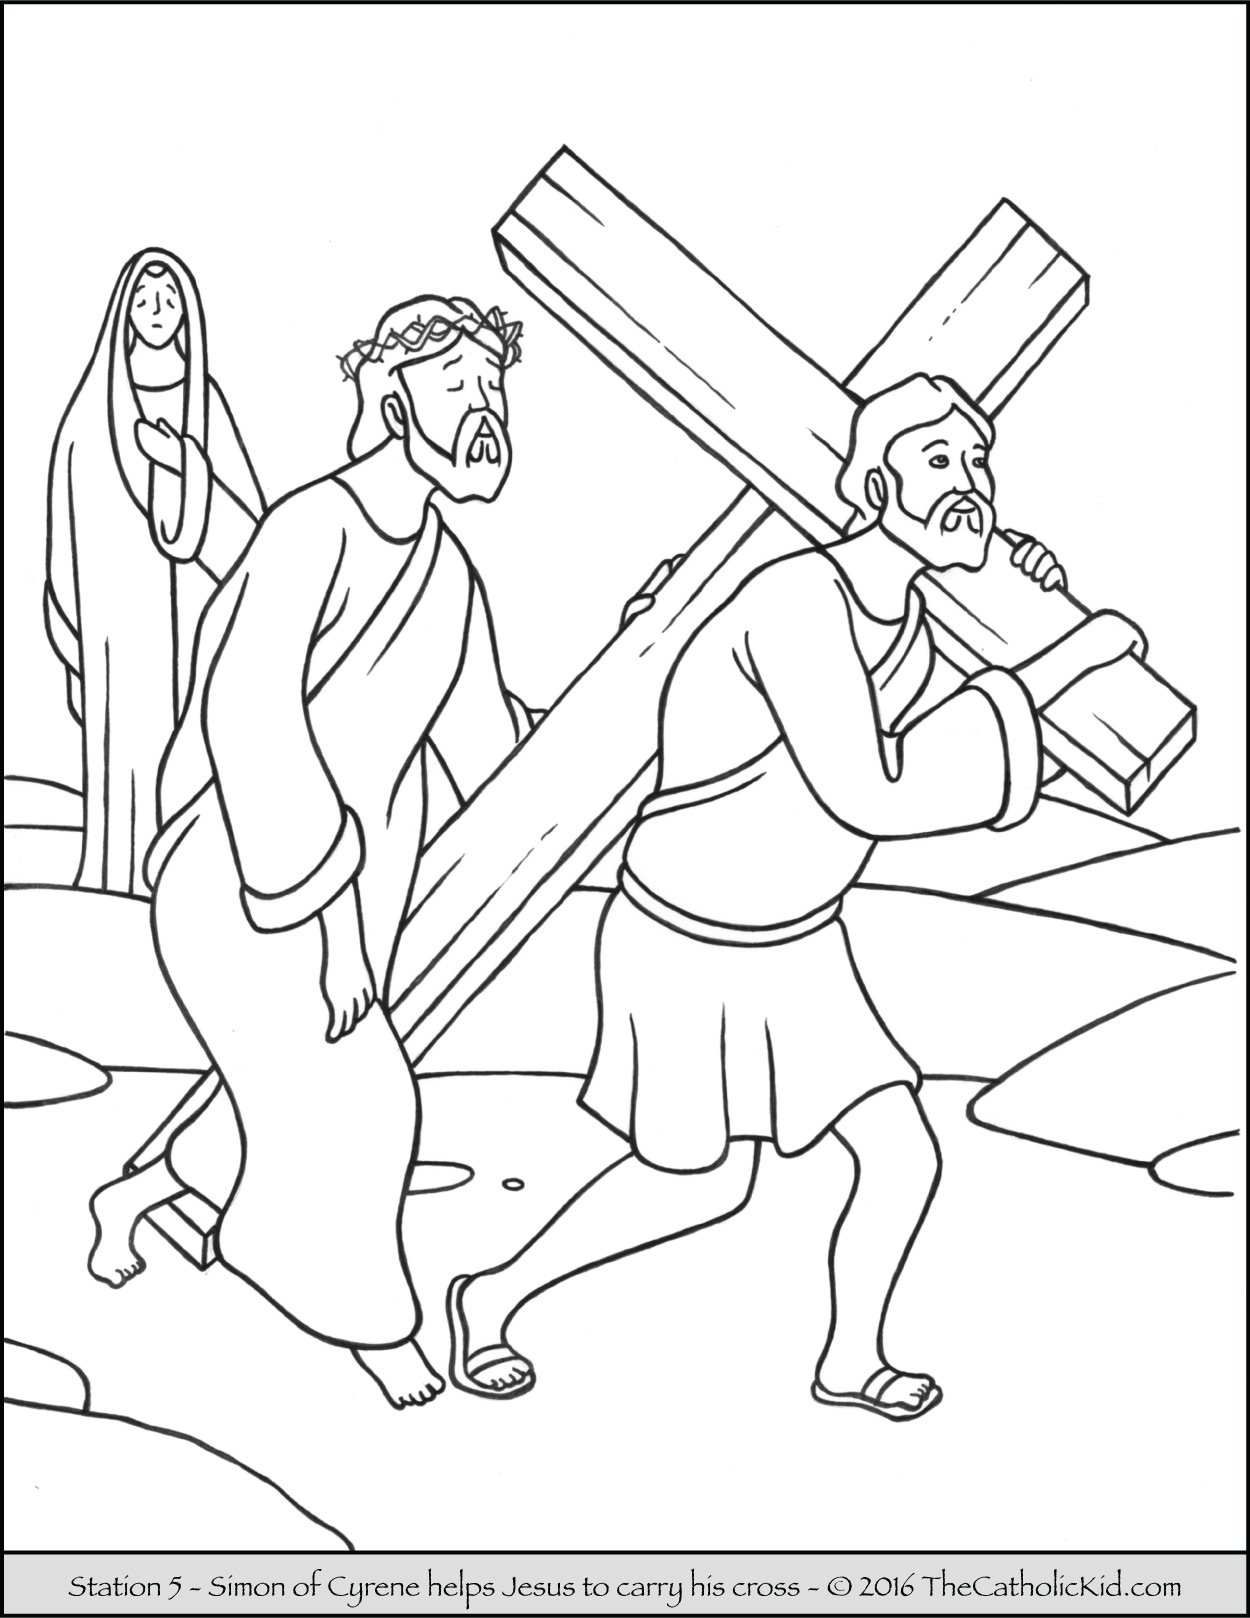 Stations Of The Cross Coloring Pages Gorgeous Stations Of The Cross Coloring Pages  The Catholic Kid Decorating Inspiration